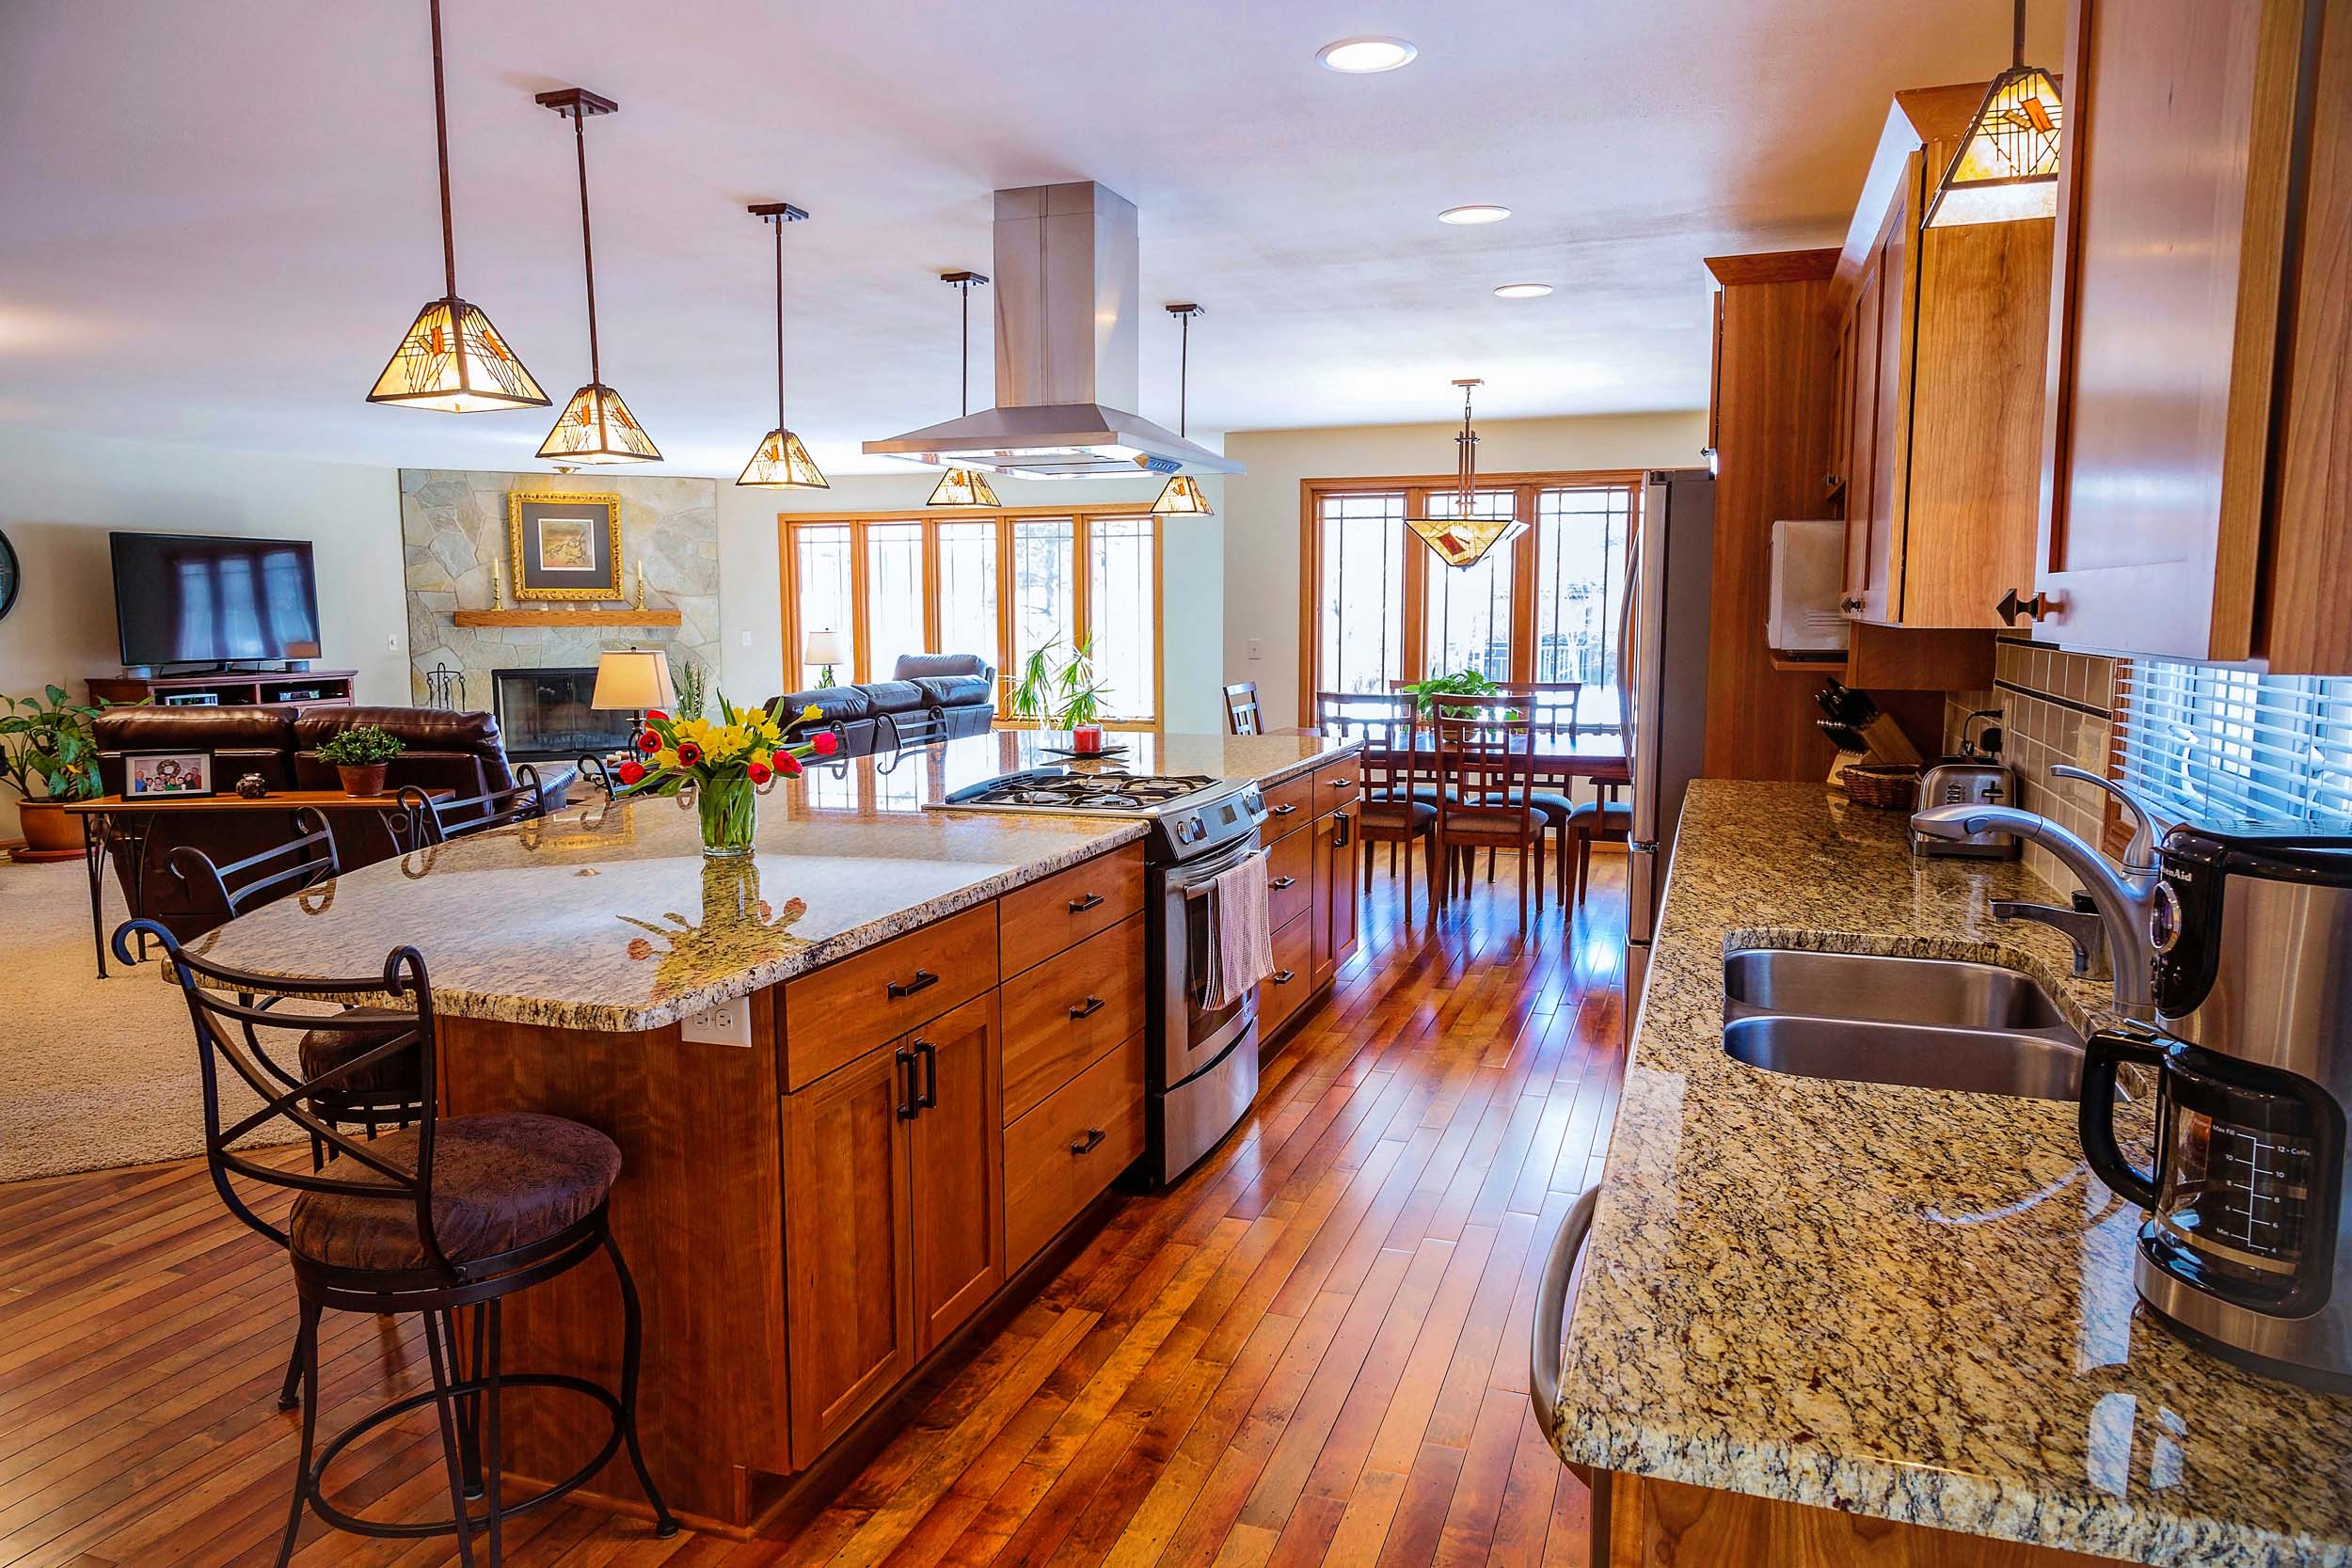 - This kitchen was formerly dark and isolated from the adjacent family room and dining room. Removal of non-loadbearing walls created a bright and connected space, suitable for family gatherings and large parties.